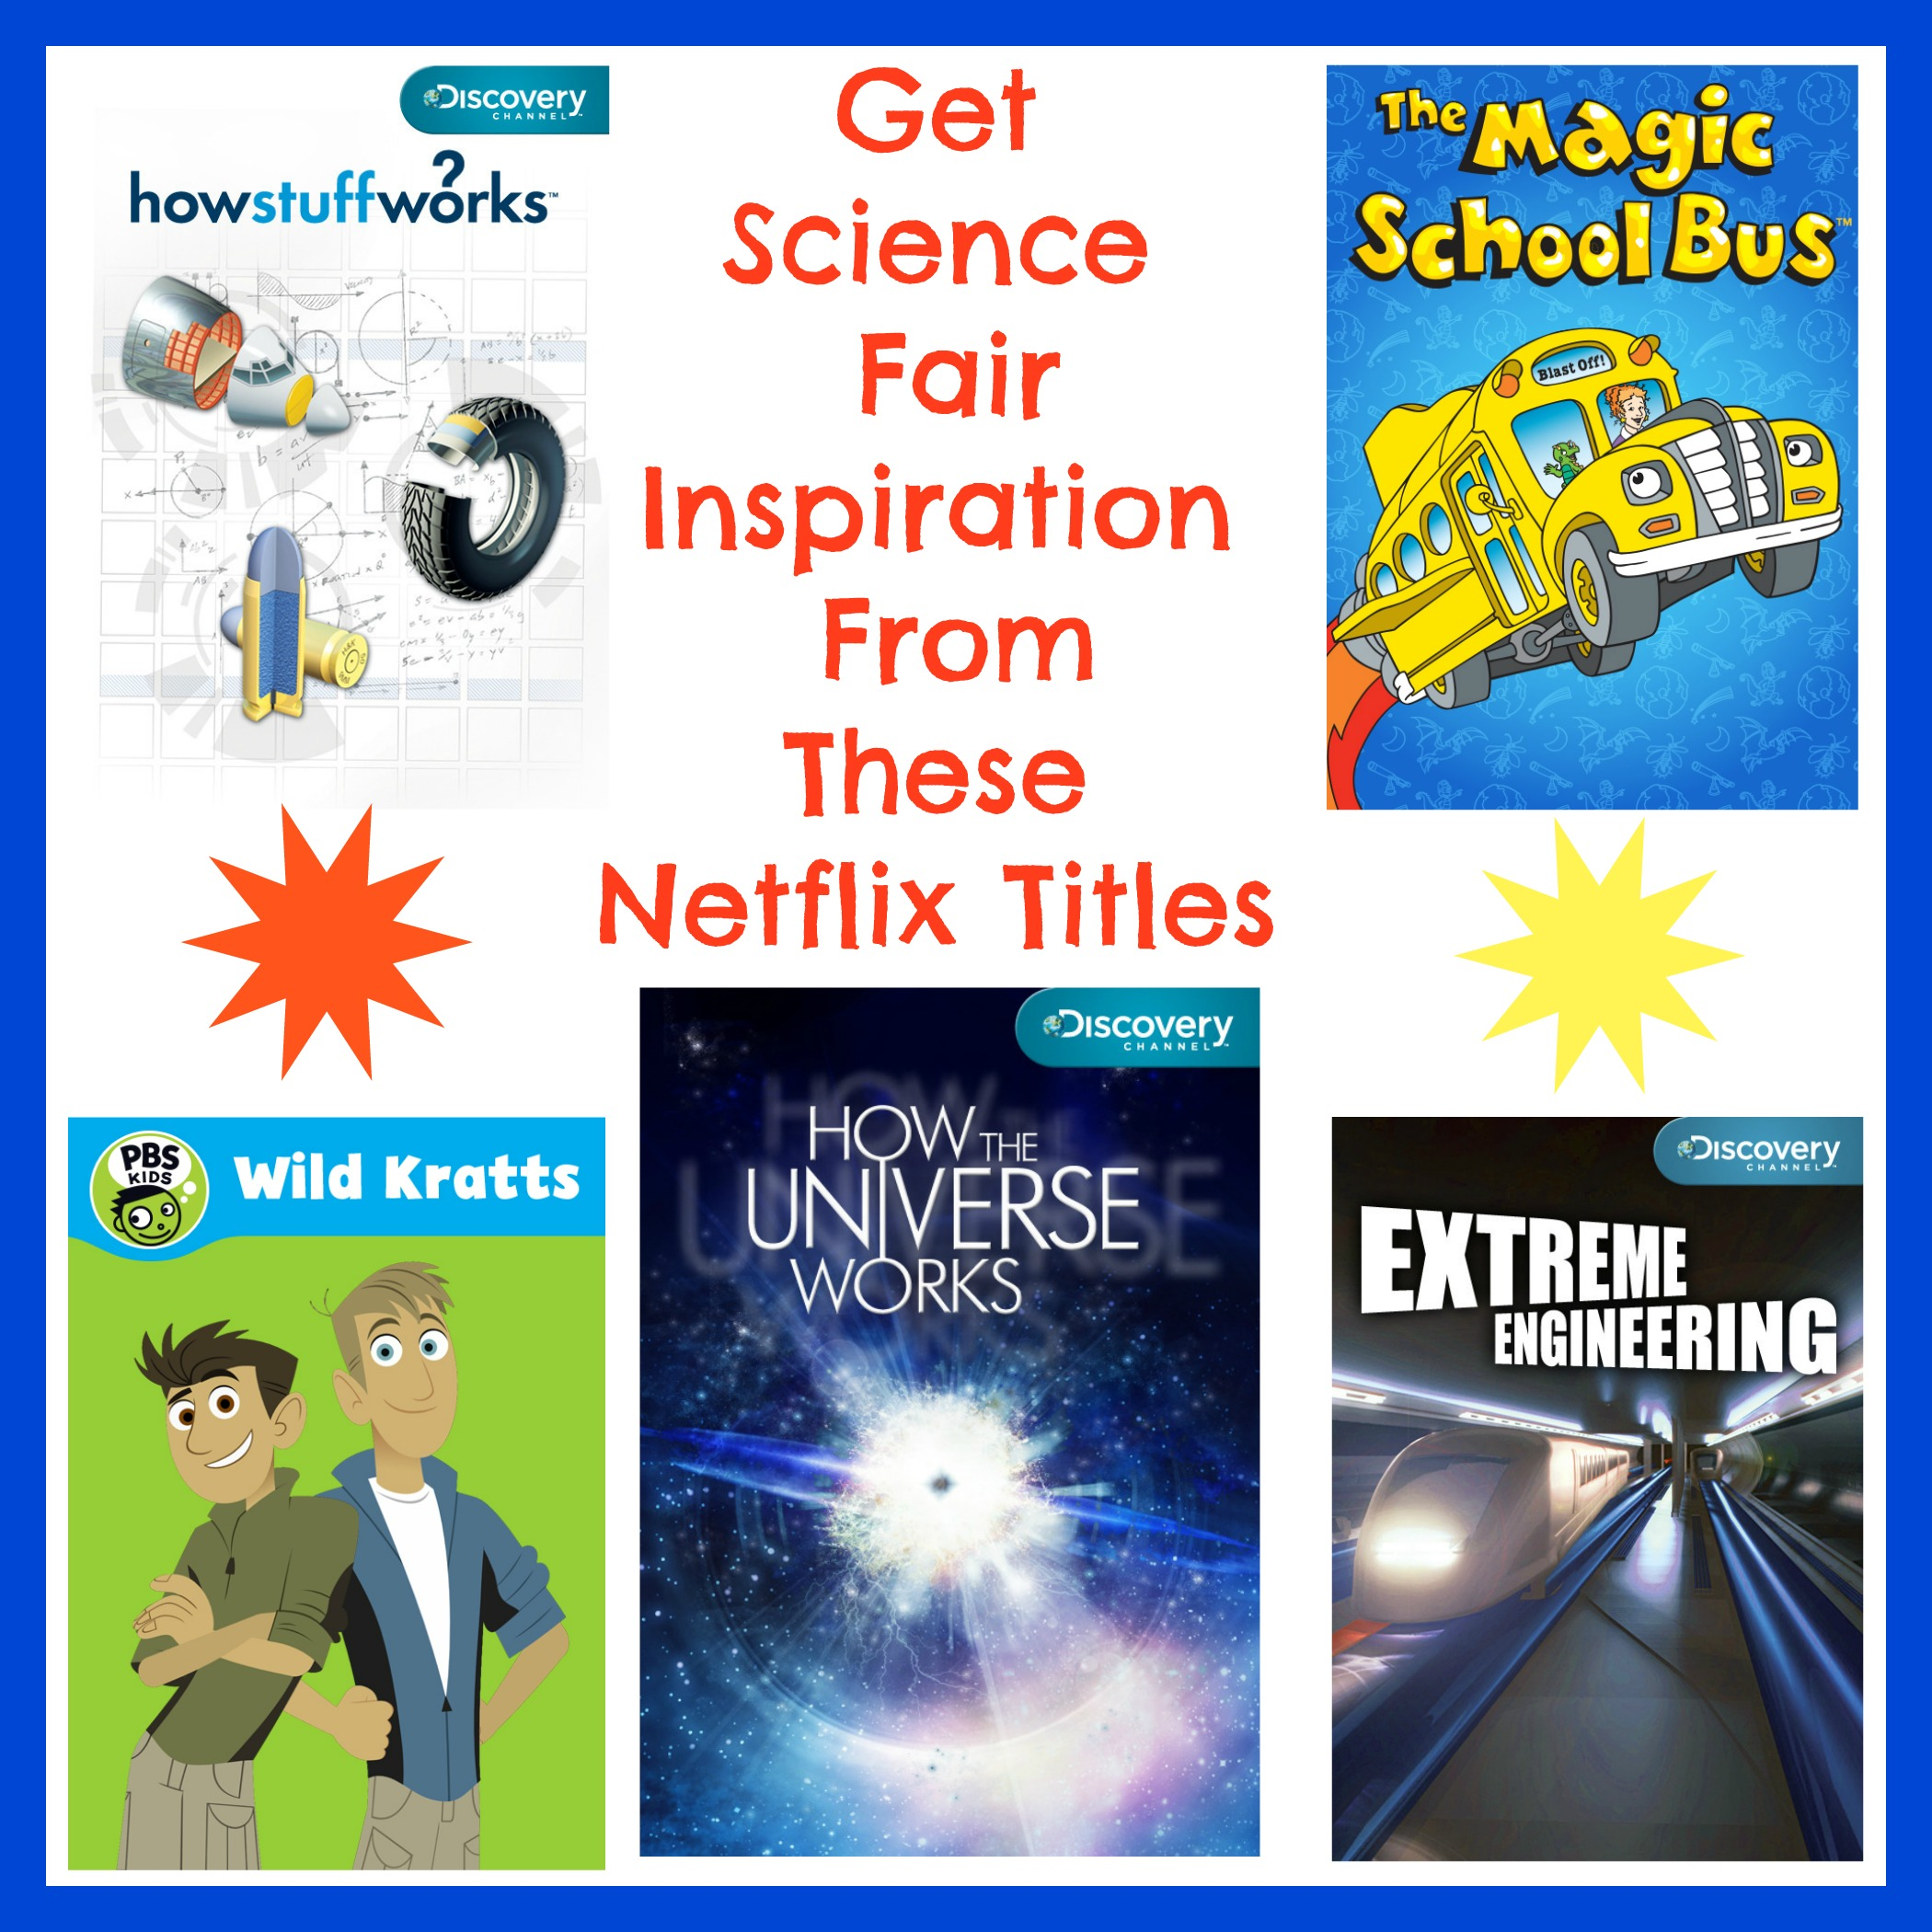 Get Science Fair Inspiration from These 12 Titles on Netflix